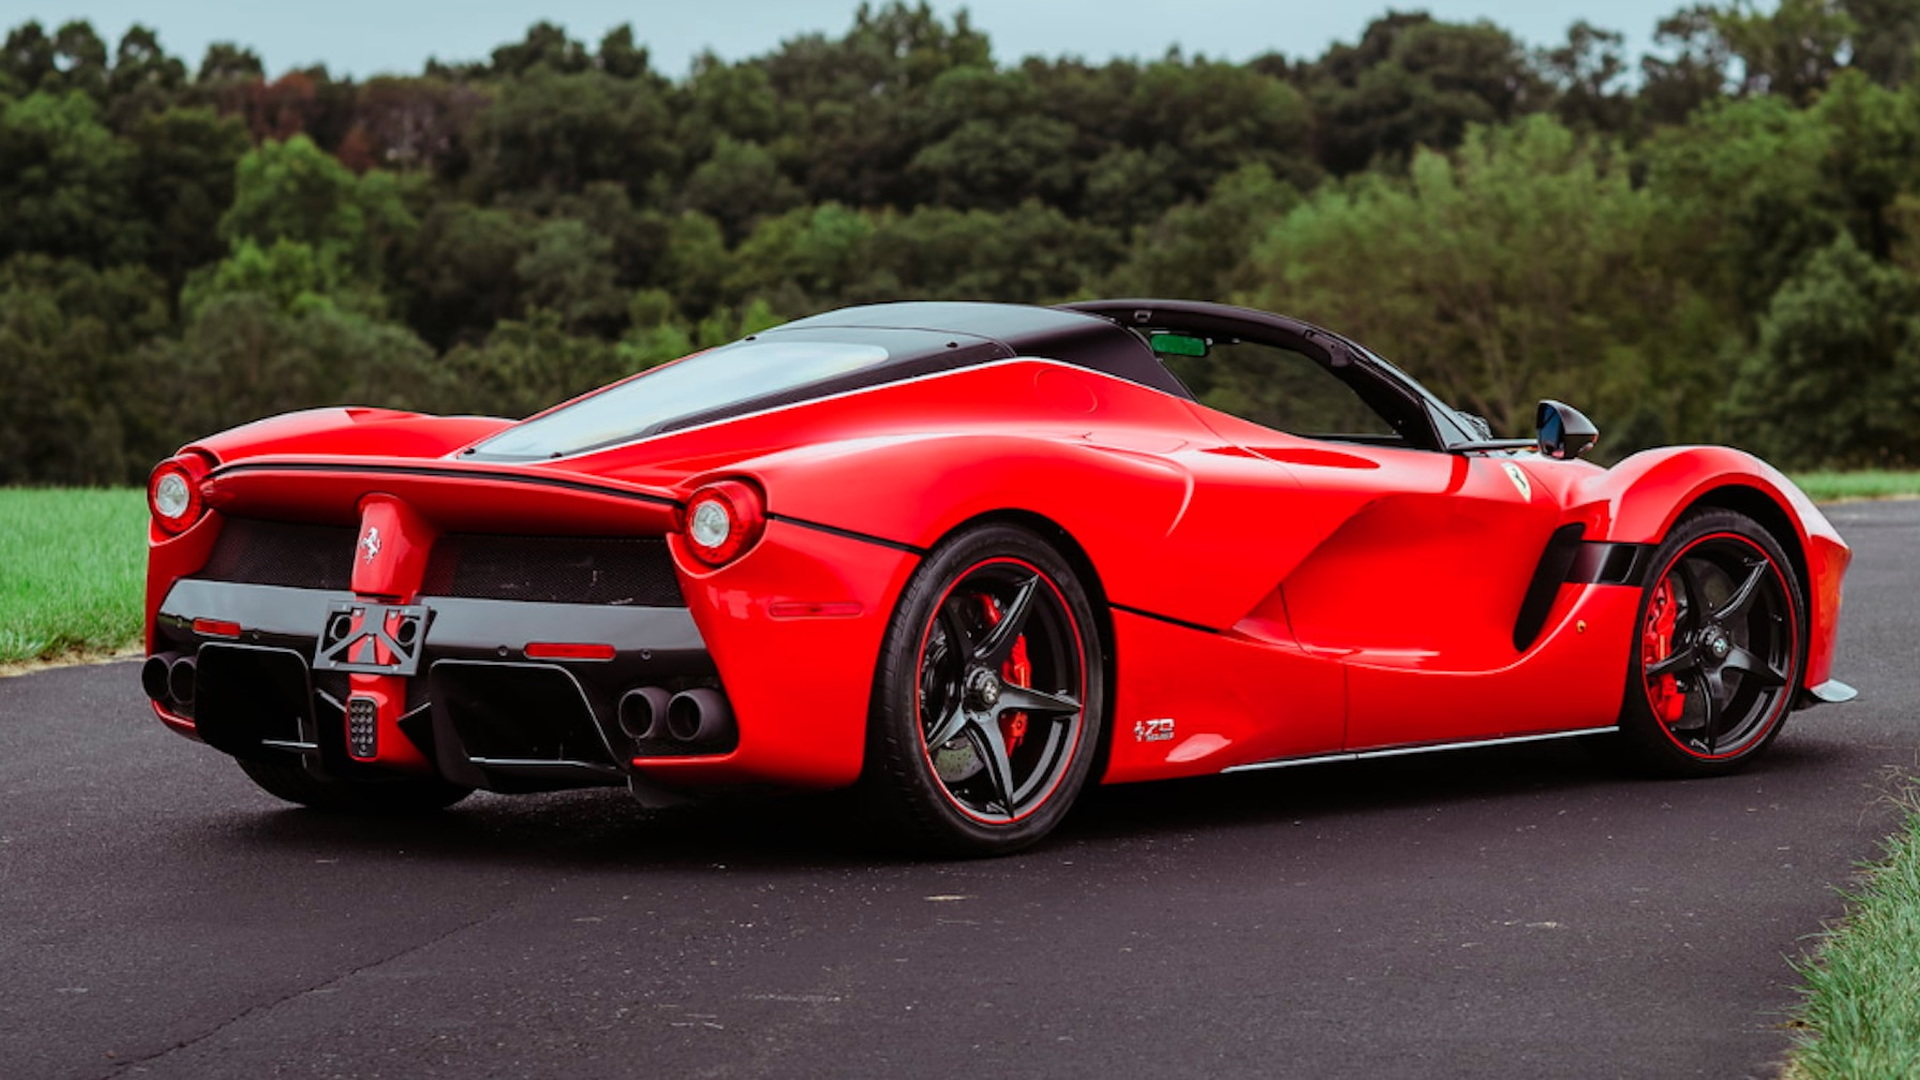 2016 Ferrari Laferrari Aperta For Sale After Failing To Sell